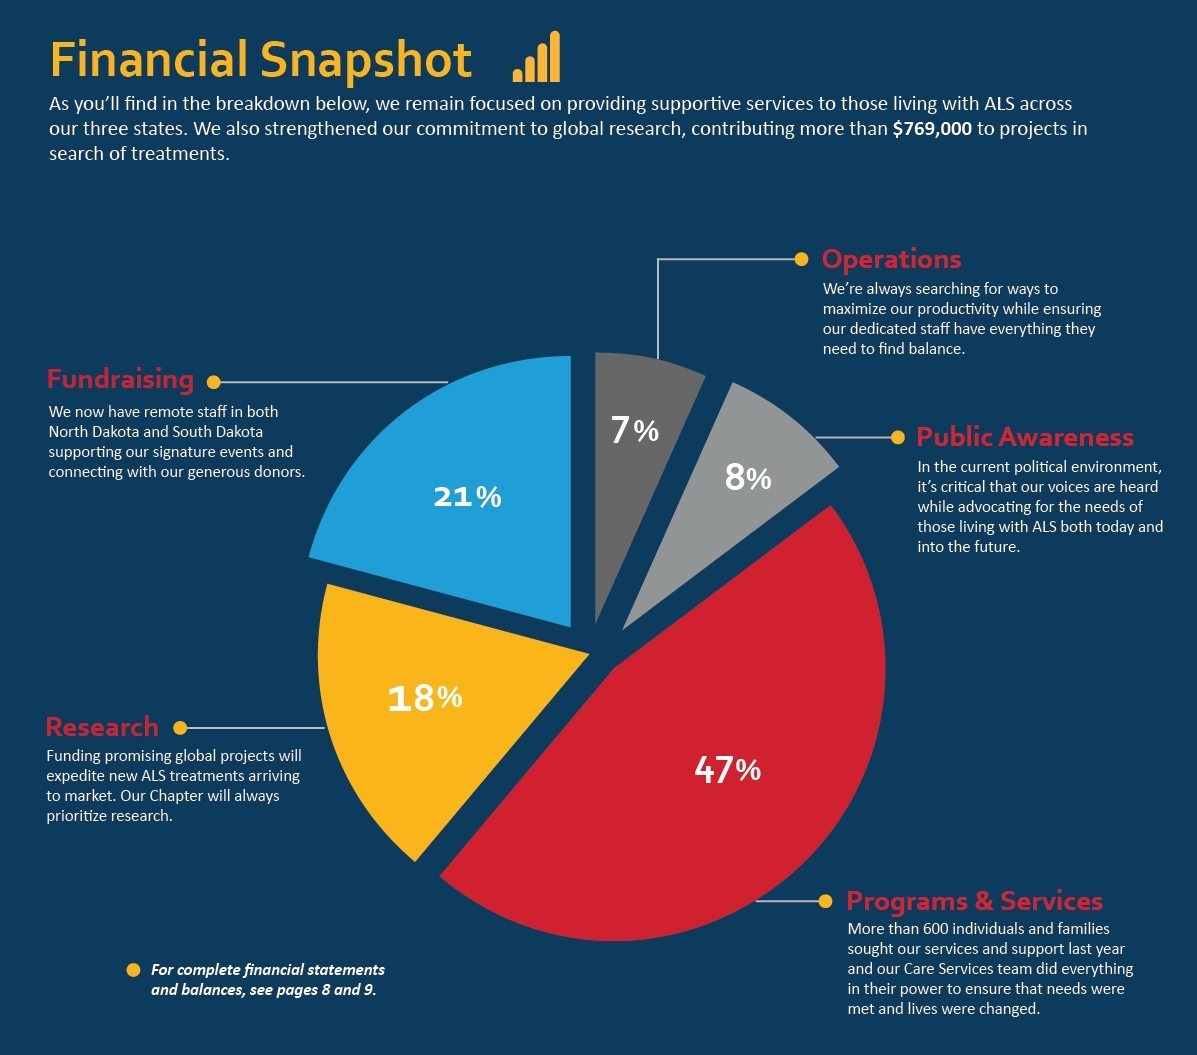 2018 Annual Report Financial Snapshot